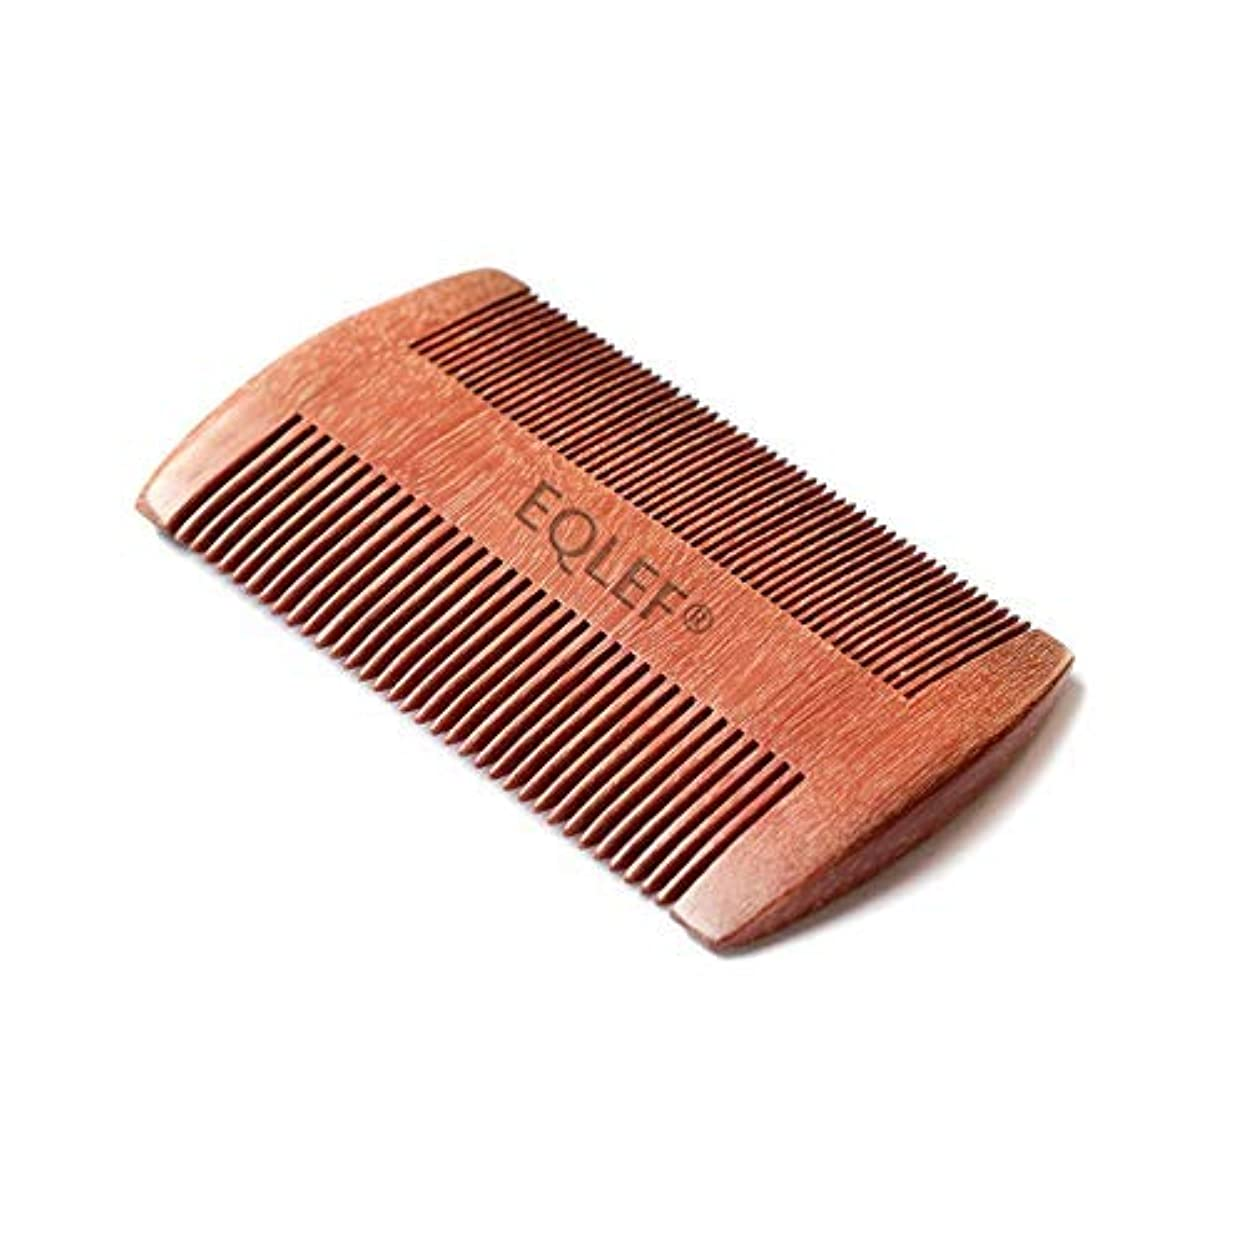 EQLEF? Red sandalwood no static handmade comb, Pocket comb (beard) [並行輸入品]